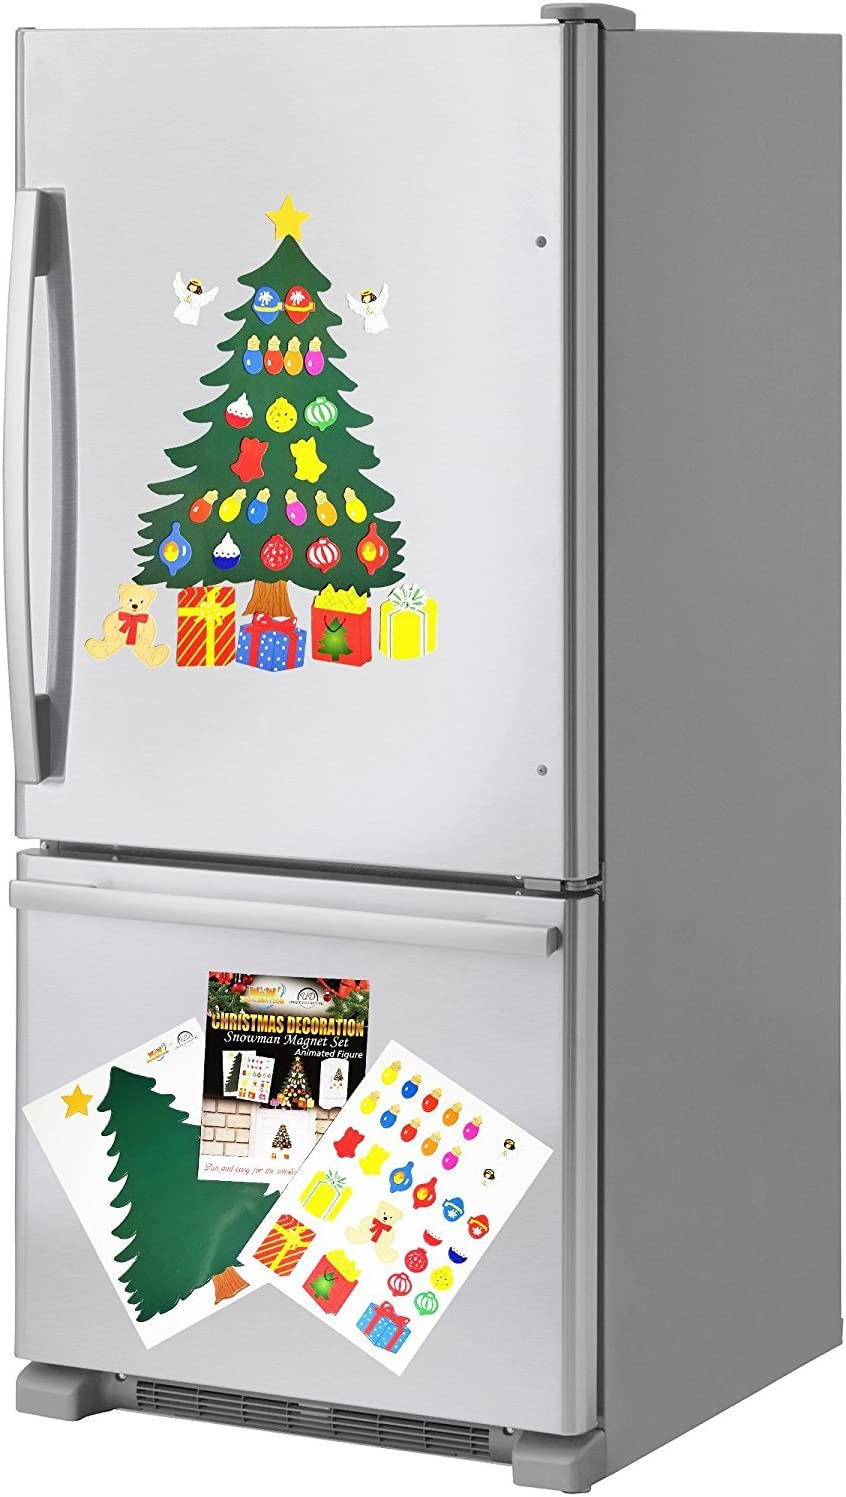 Christmas Decoration. Animated Tree Magnet Set. Perfect For Winter Decorations. Fridge, Metal Door, Garage, Classroom. Give Gift. Ornament Décor. If You Like Elf on The Shelf You'll Love This Too.